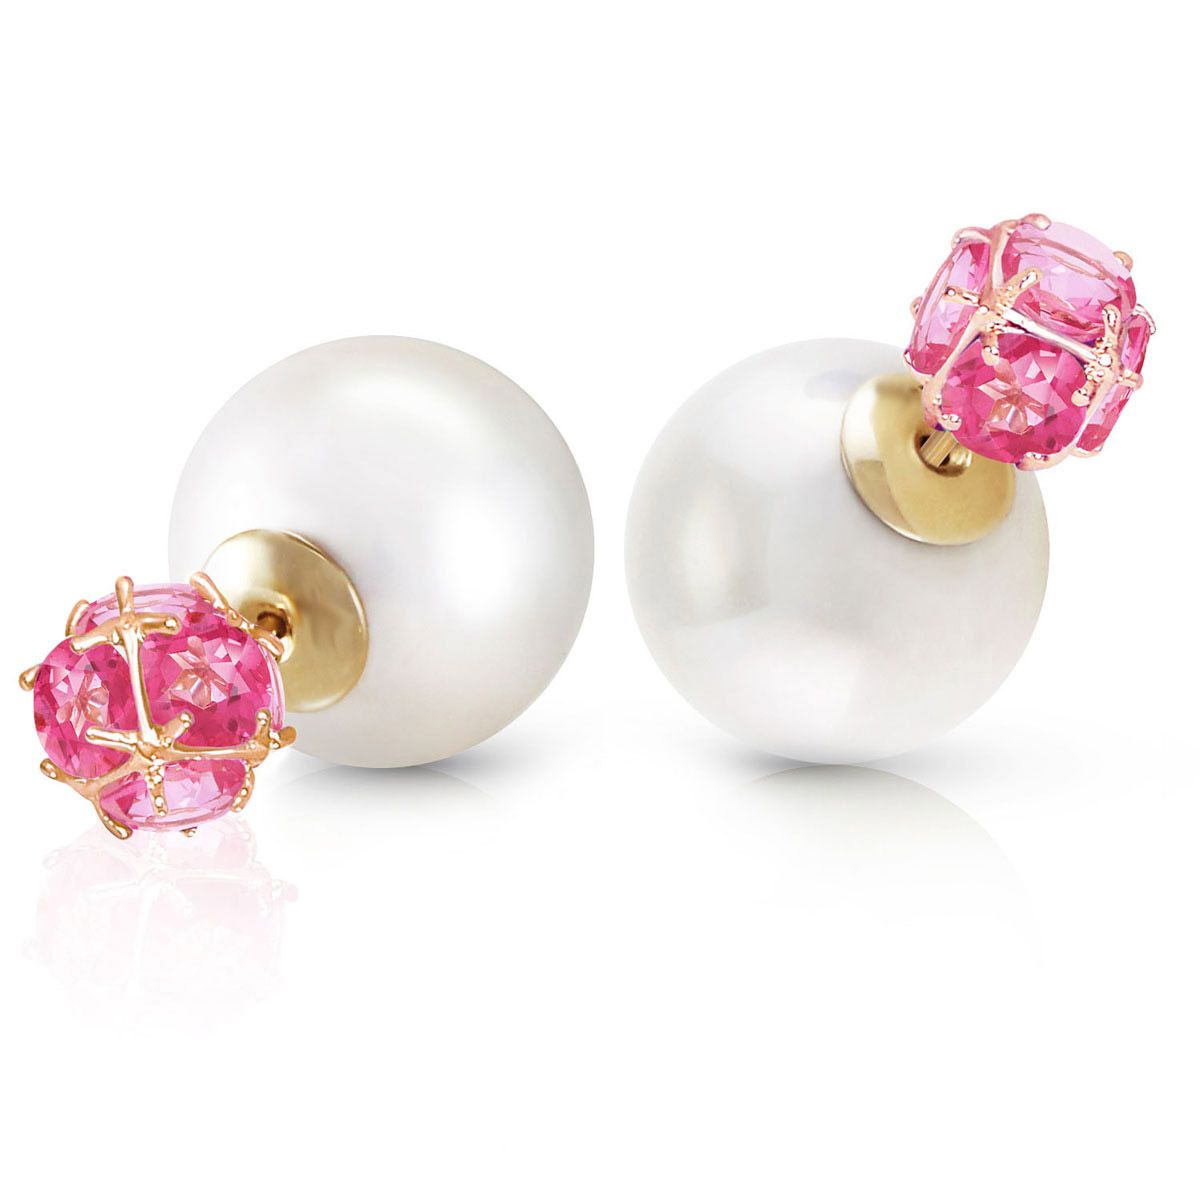 Pearl Double Shell Stud Earrings 70 ctw in 9ct Gold